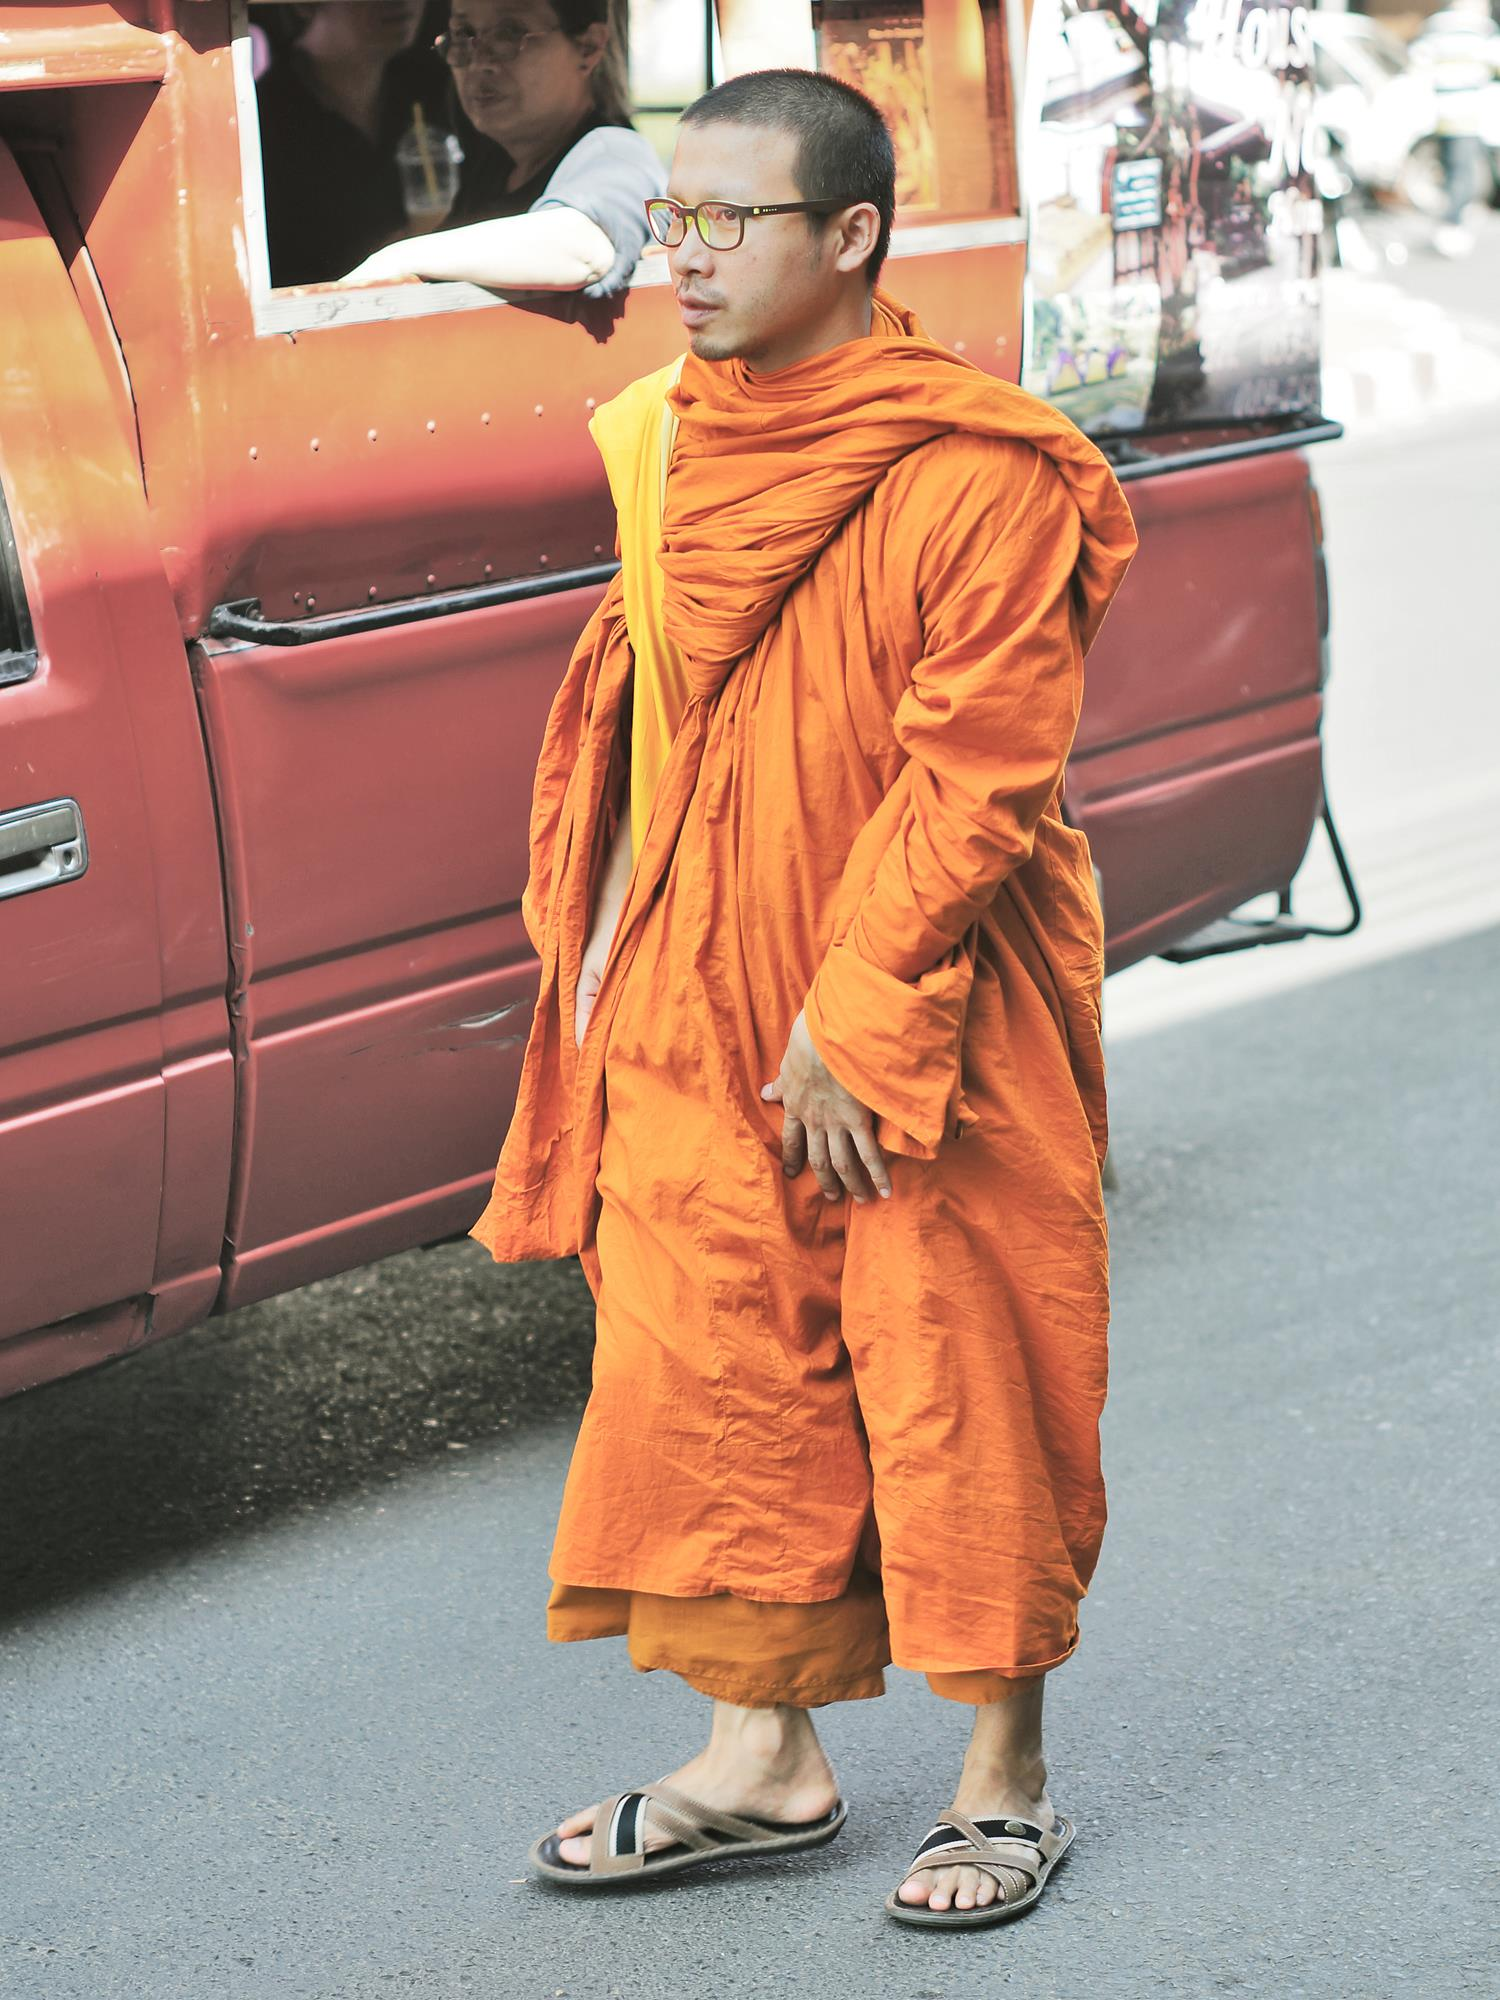 monk and songthaew chiang mai thailand